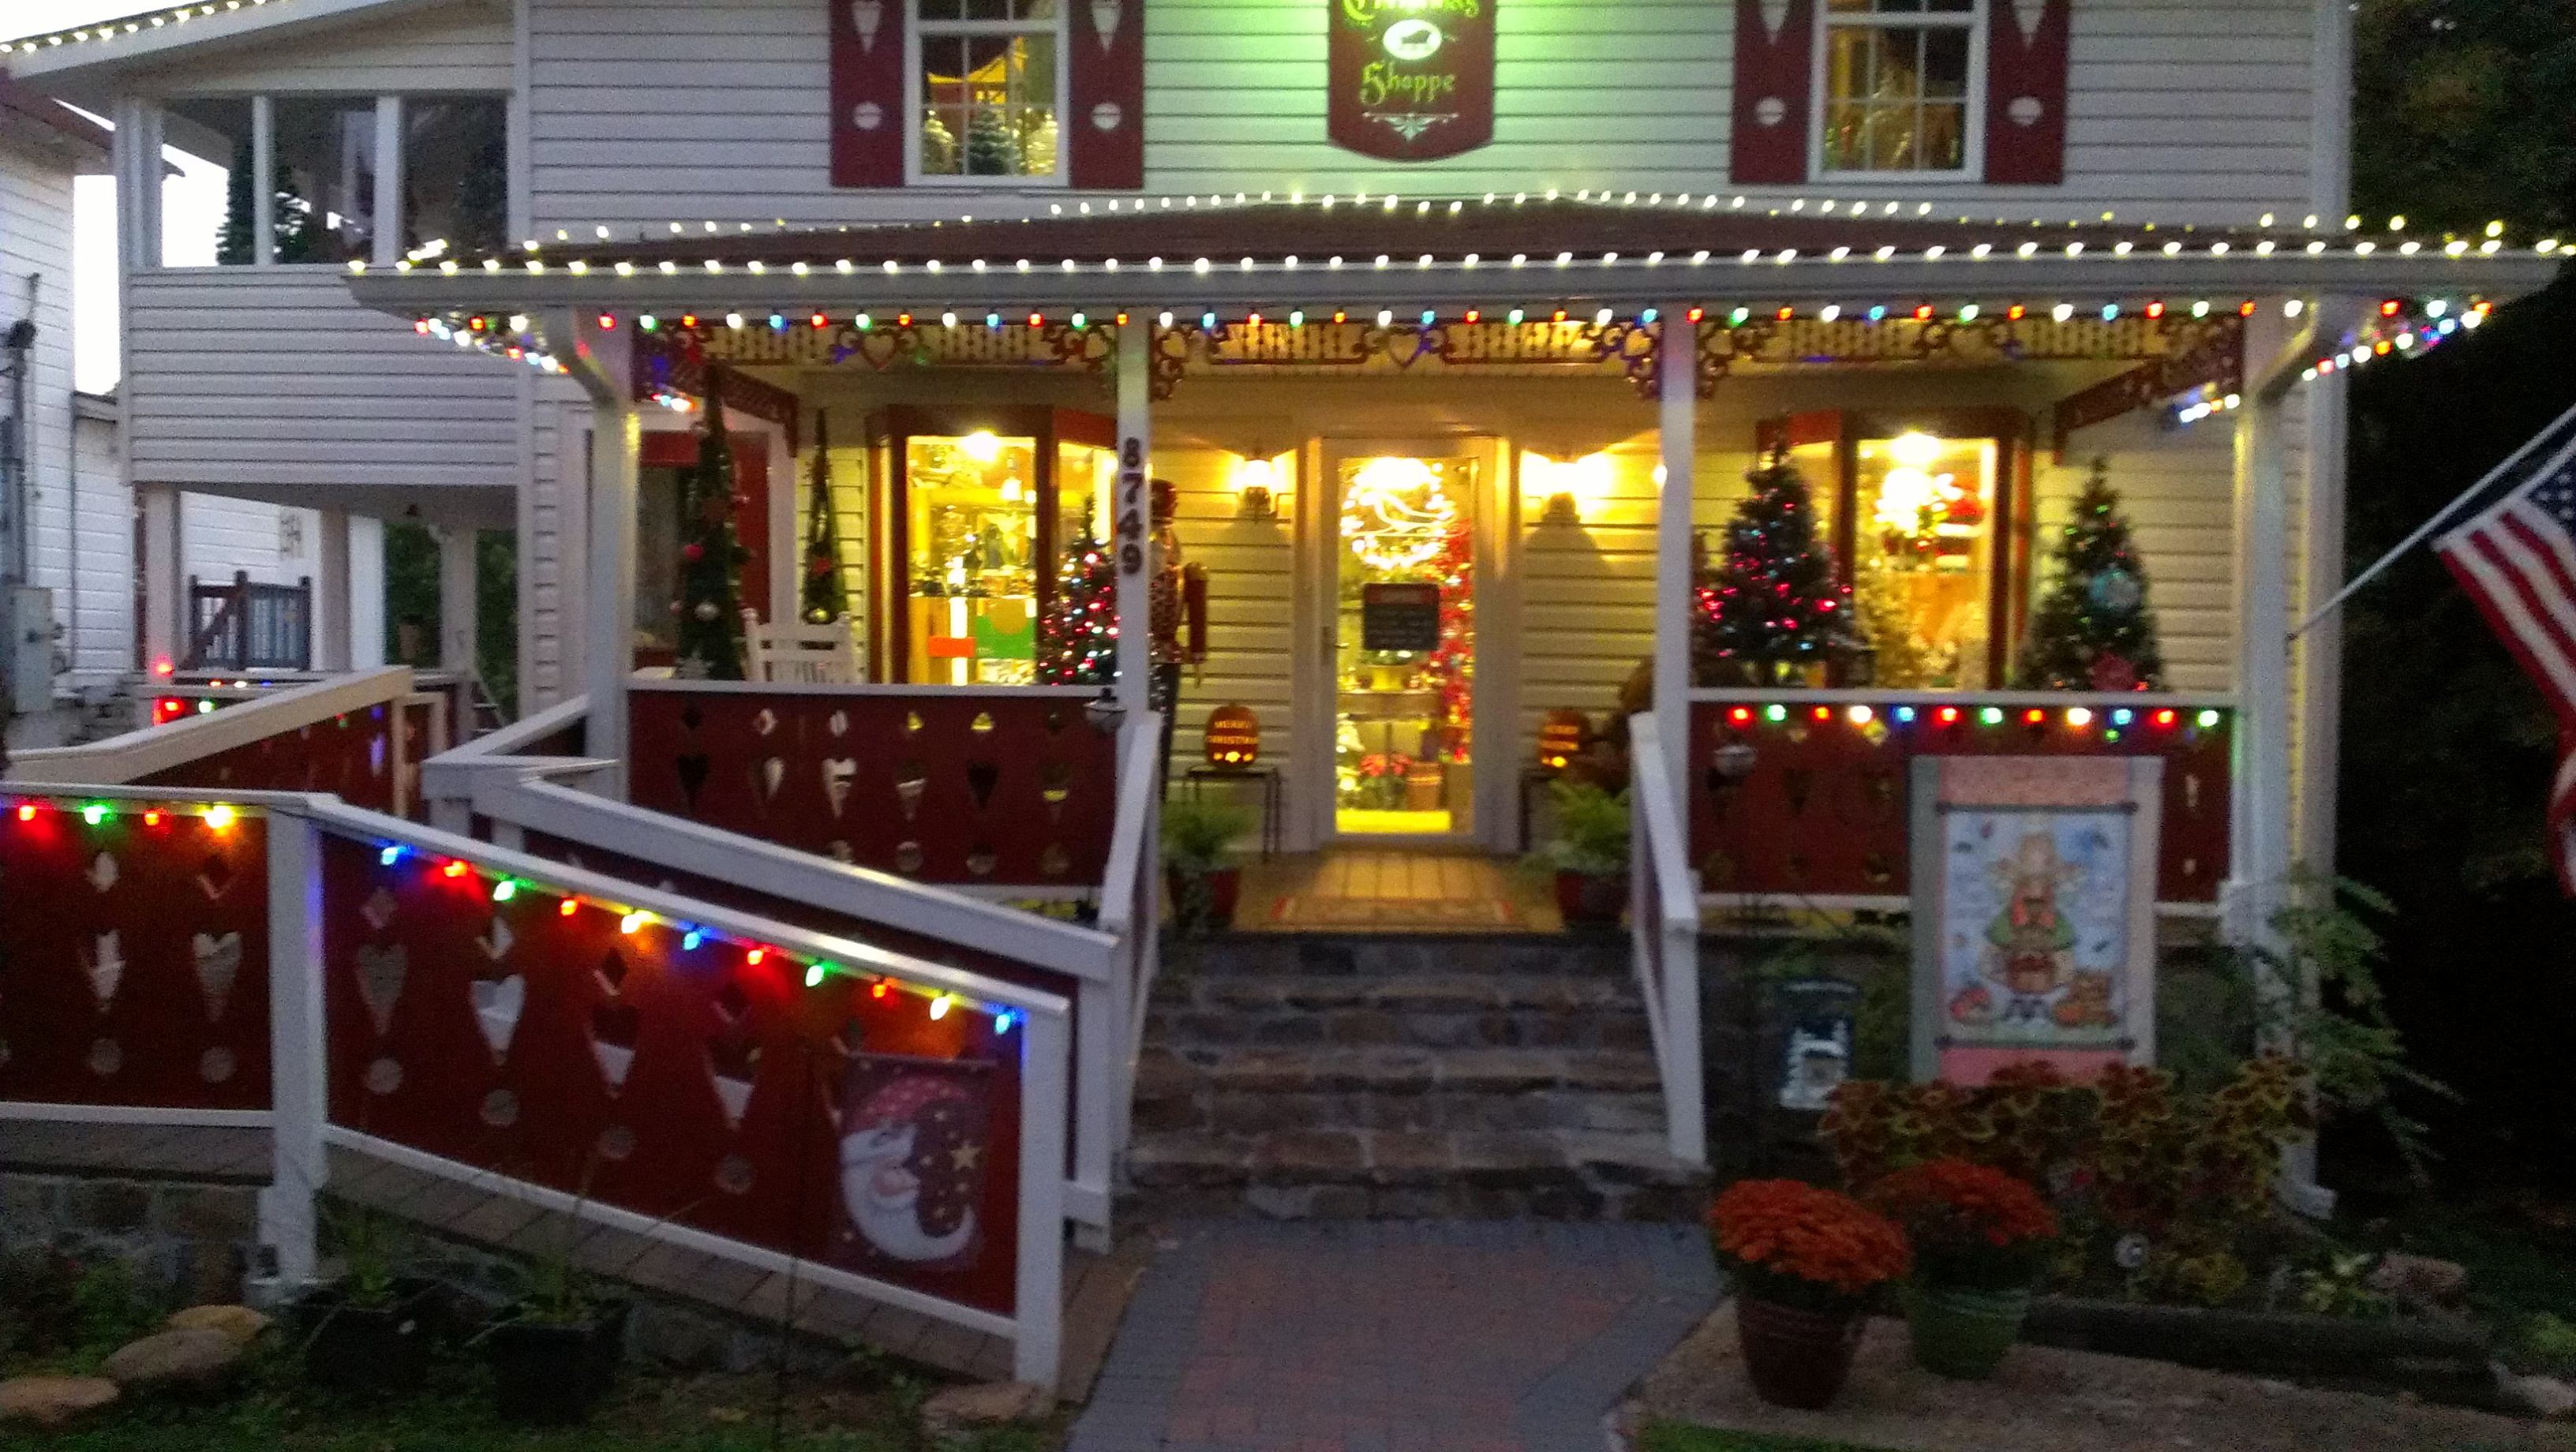 Helen Ga Christmas.The Christmas Shoppe Helen Ga